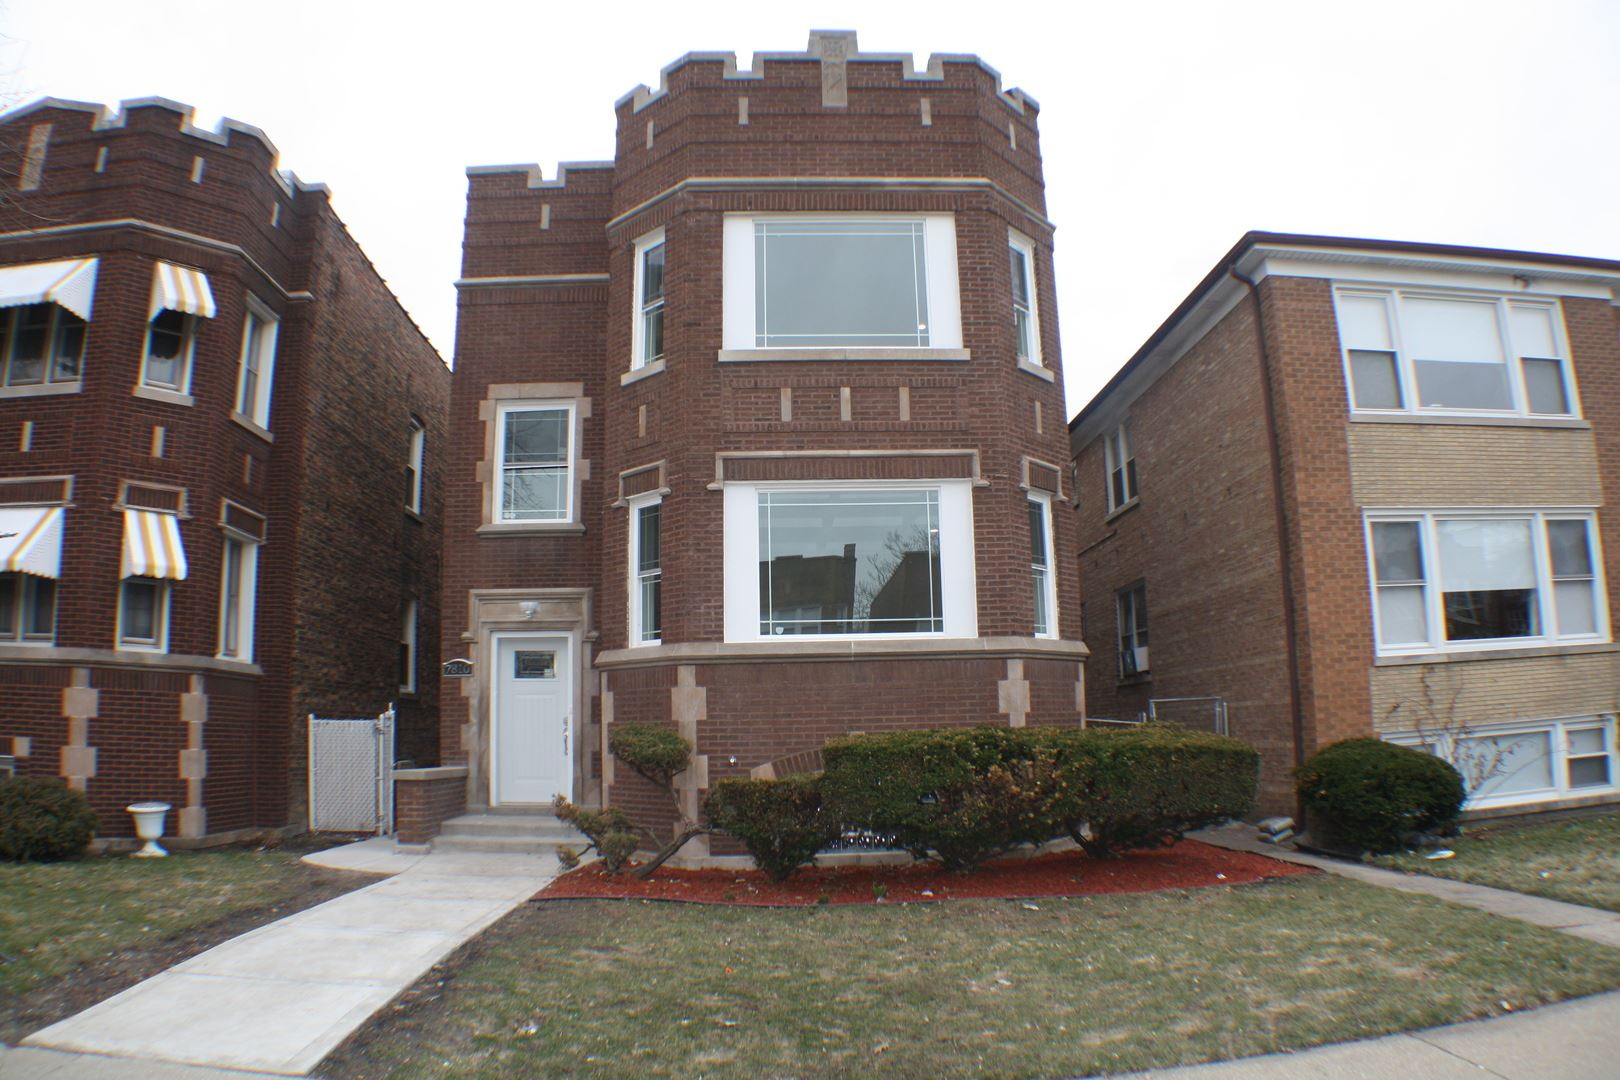 7810 S Honore Street, Chicago, IL 60620 - #: 10665638